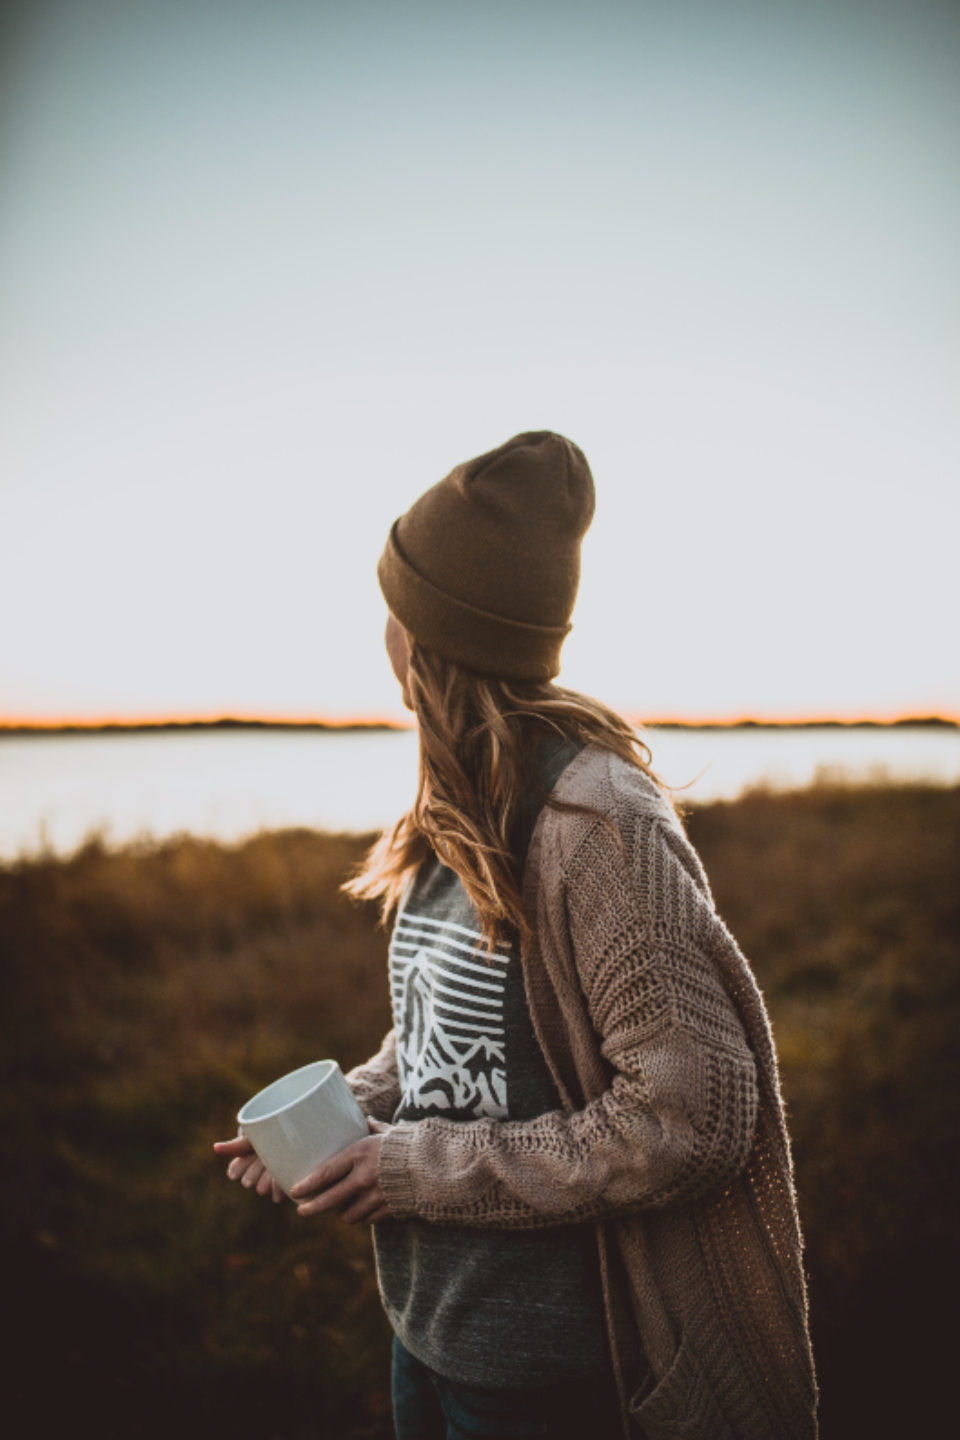 fall sunset girl beanie water lake camping nature earth hipster outdoors mug cold sweater cardigan